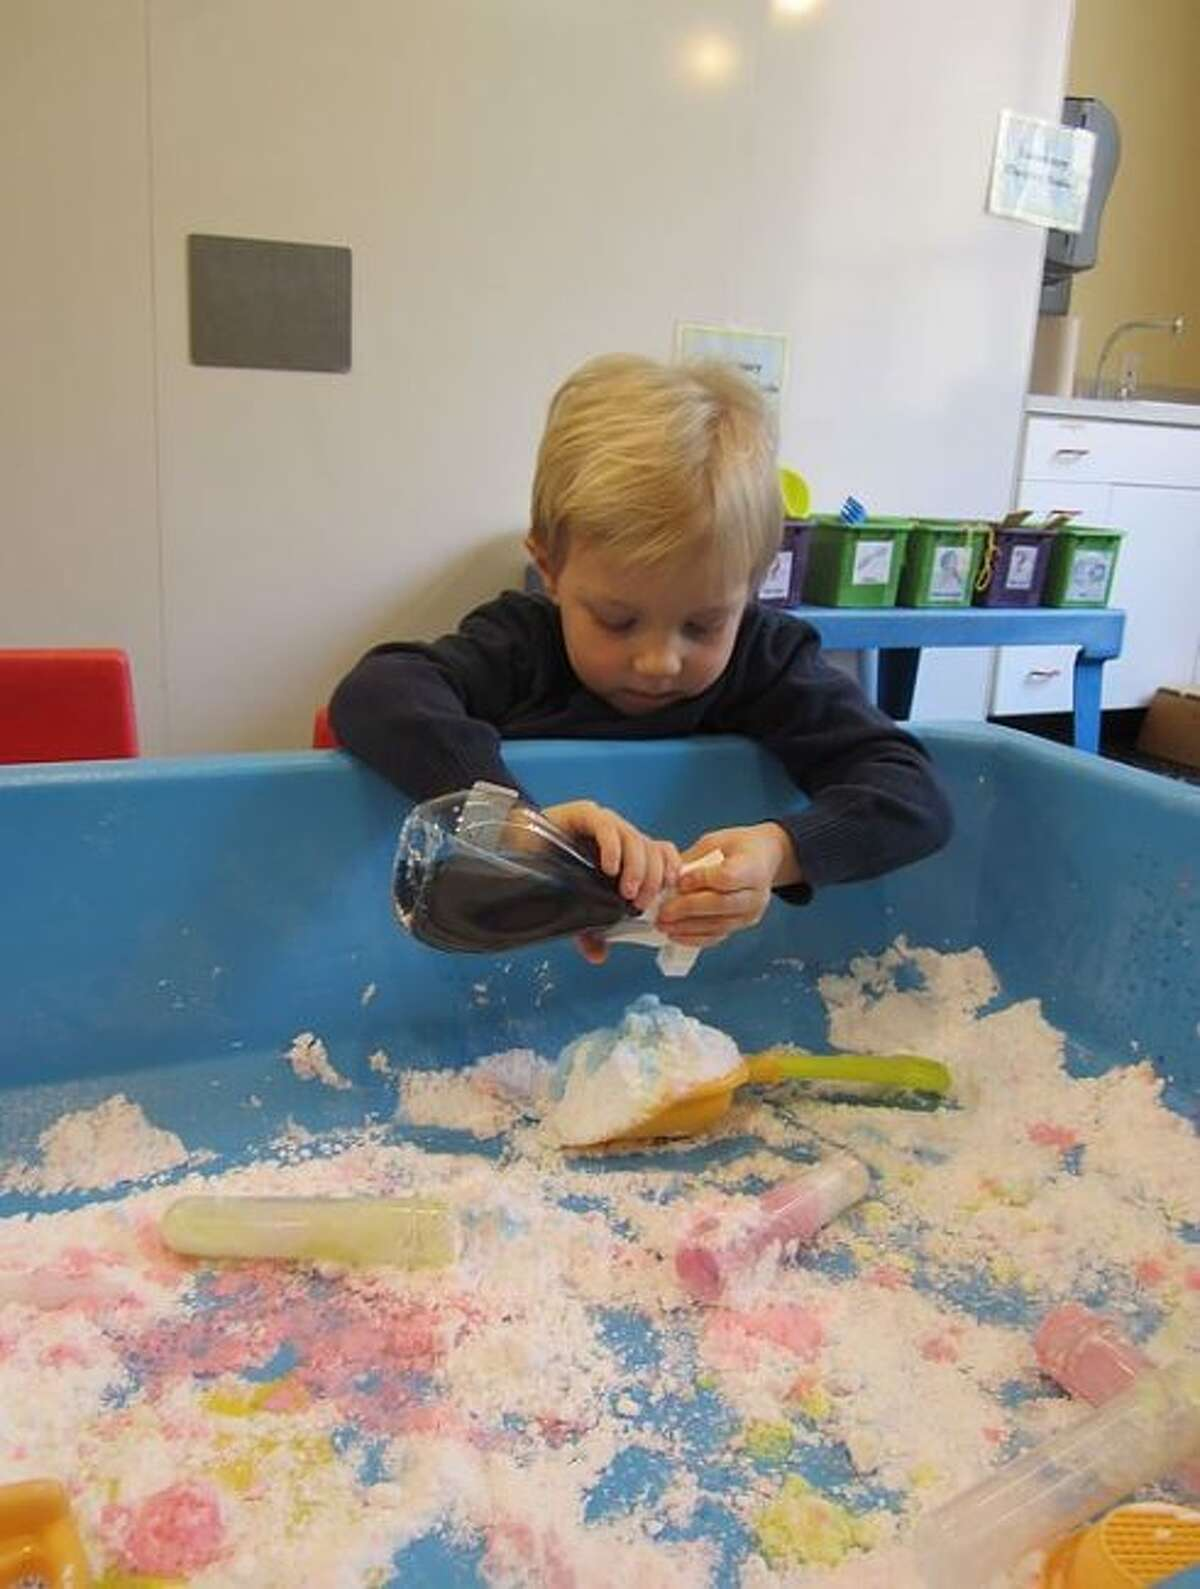 A child plays during an Imagination Lab session at the Grand Rapids Children's Museum. The museum, along with other locations in Grand Rapids and Mount Pleasant offer a variety of day trip adventures during the holiday break. (Courtesy photo)